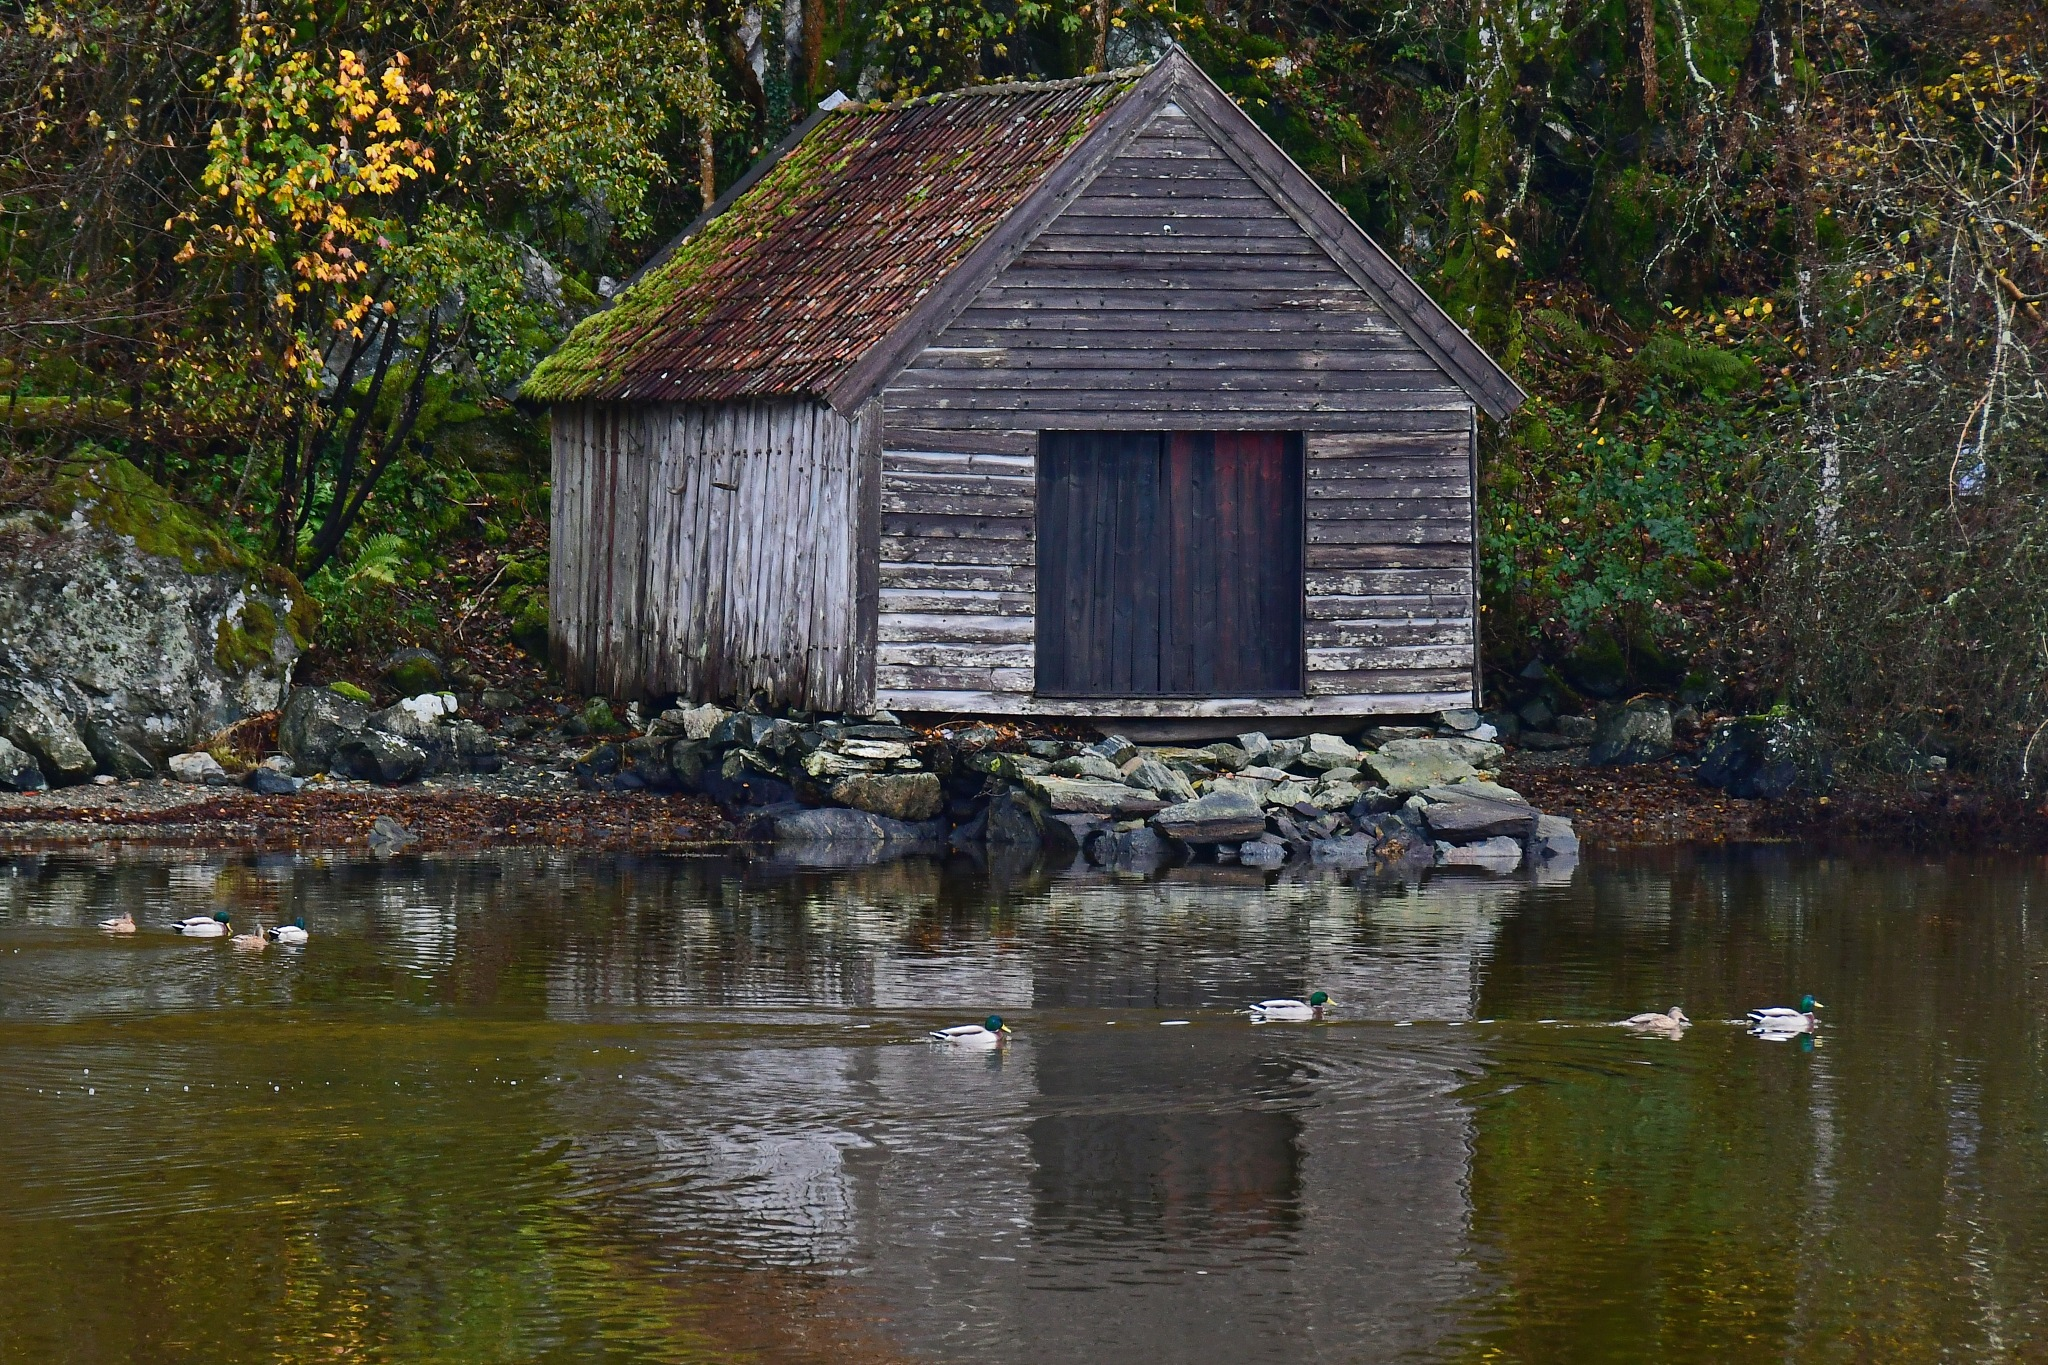 Boathouse in autumn colors by Per Molvik